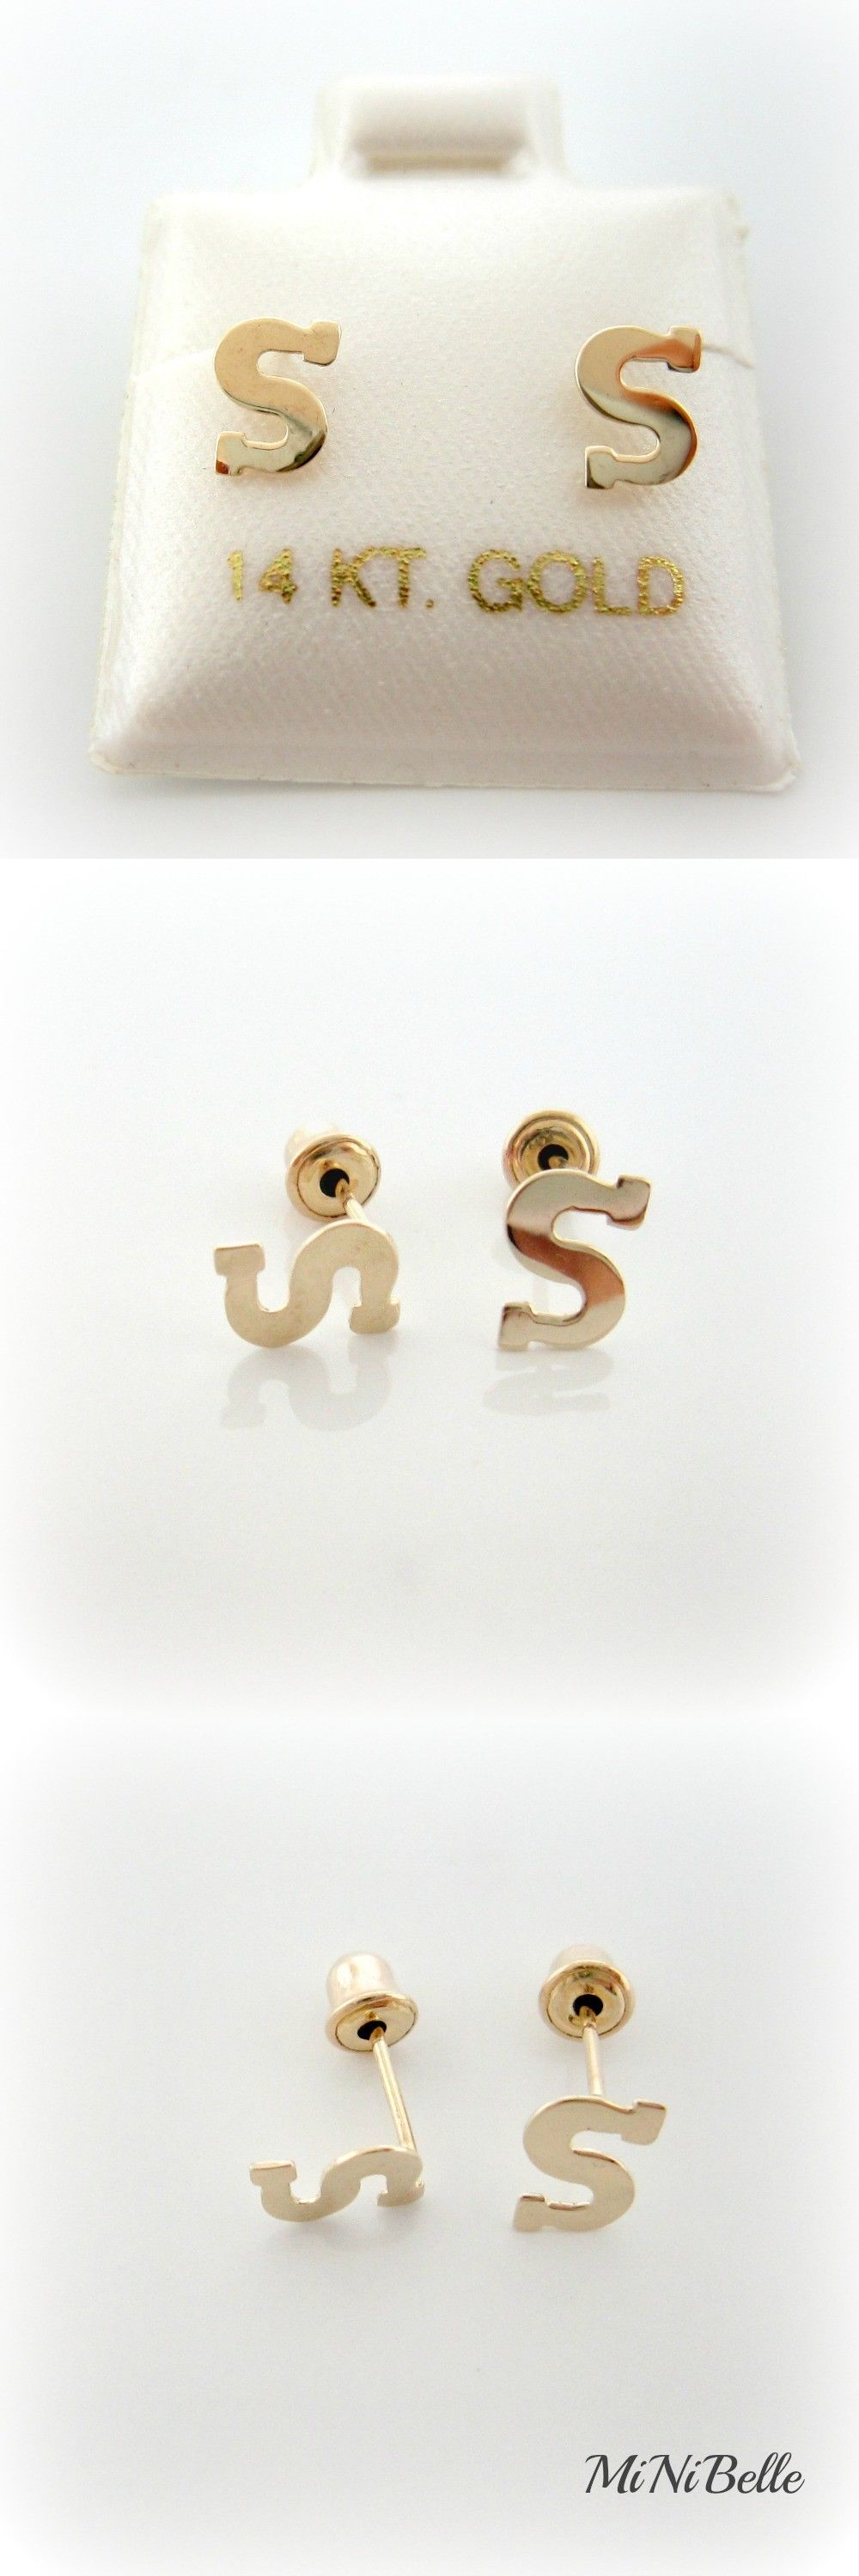 studs pin flower yellow gold kid white earrings cz stud baby